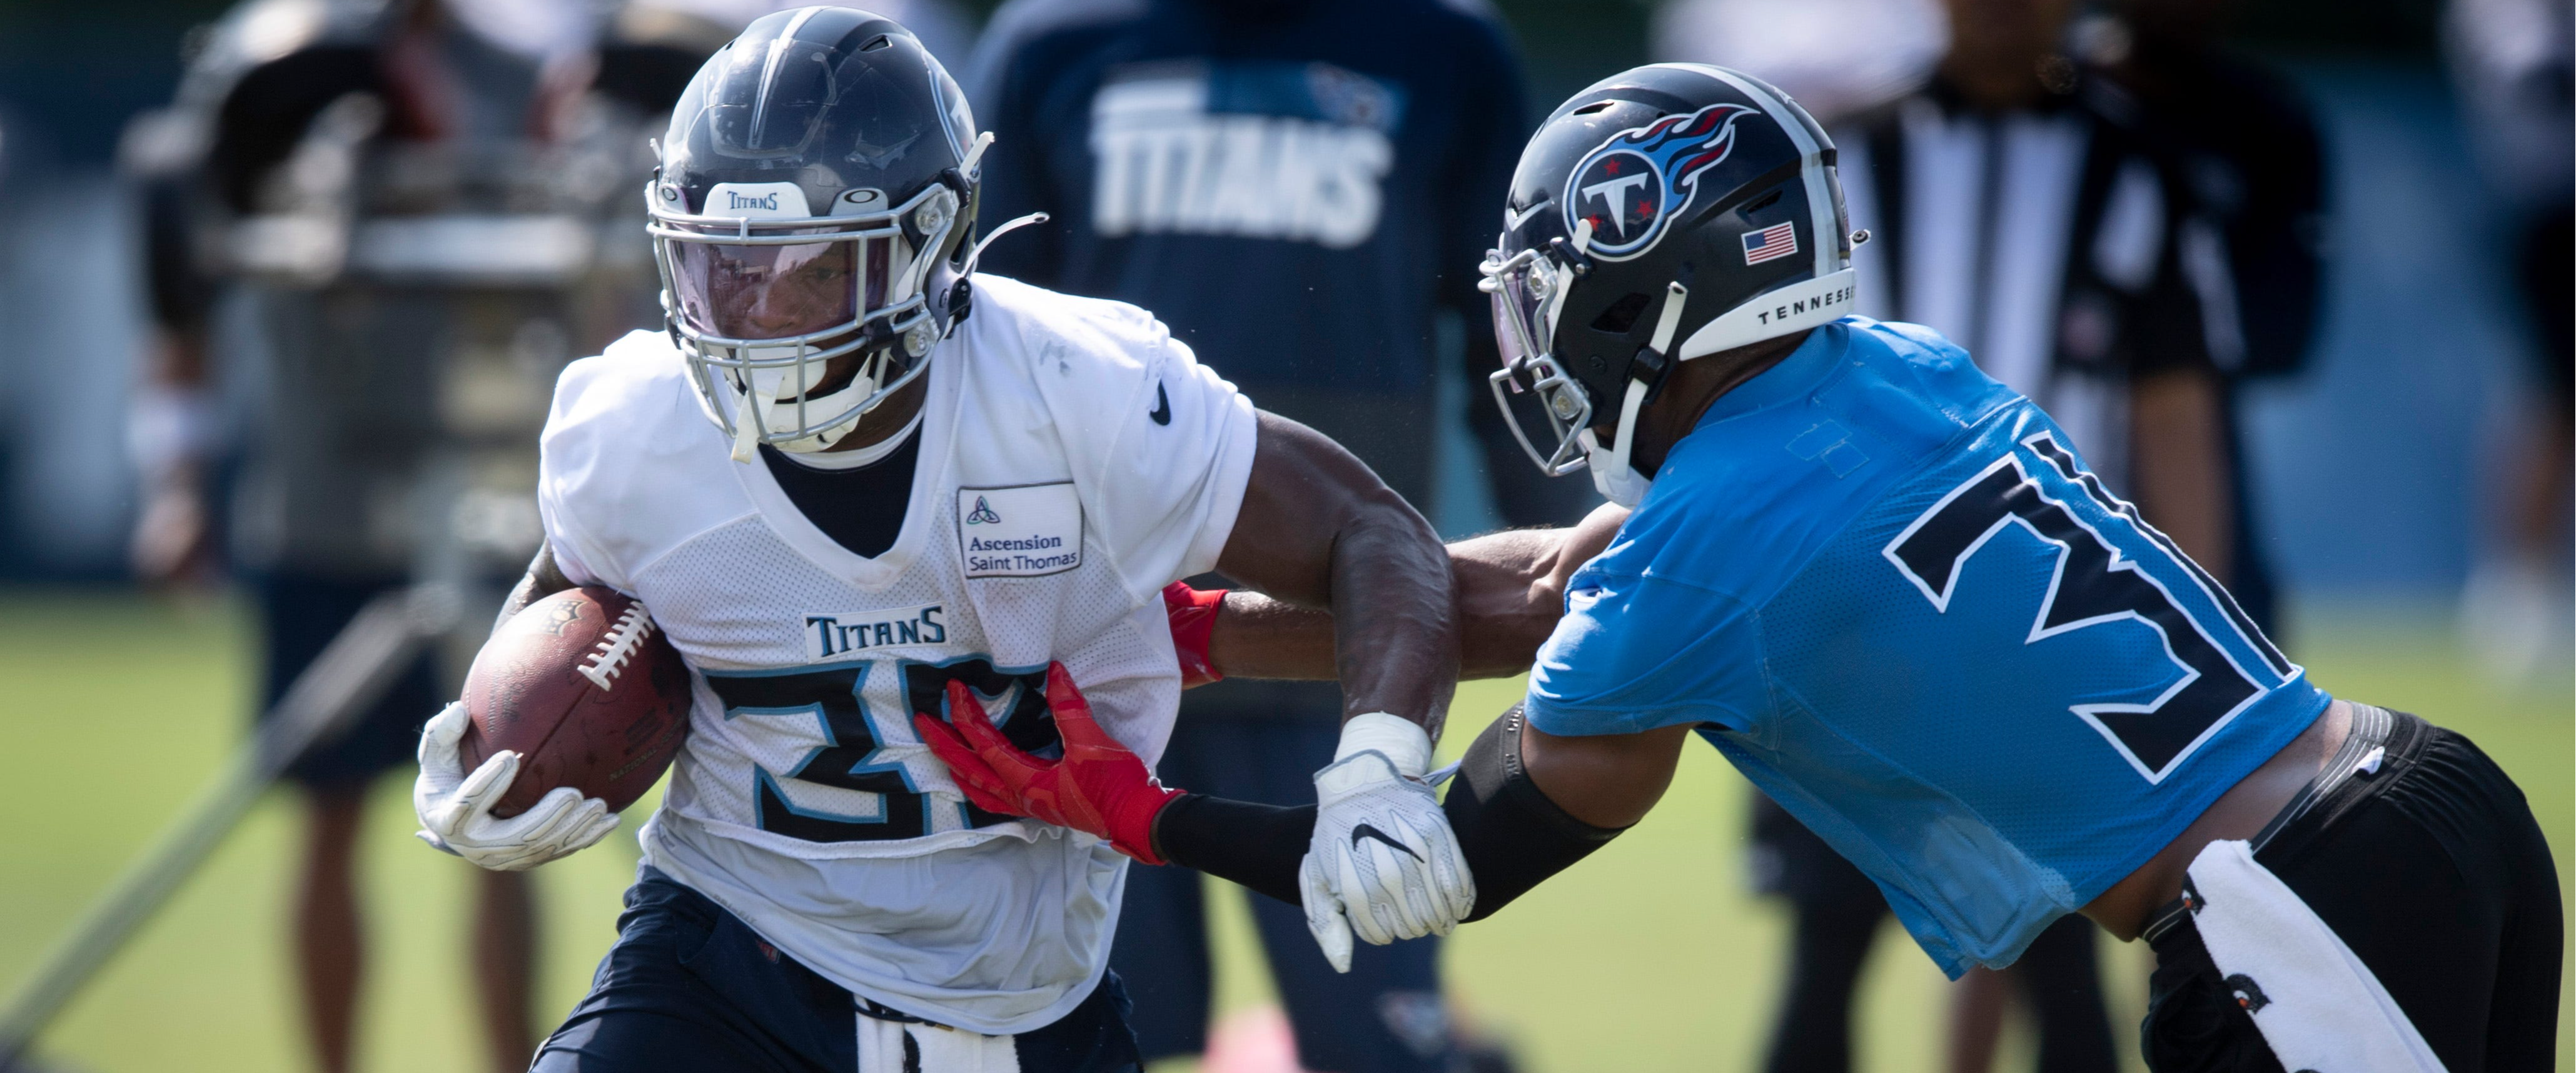 Titans: 3 things to watch for in the first preseason game tonight